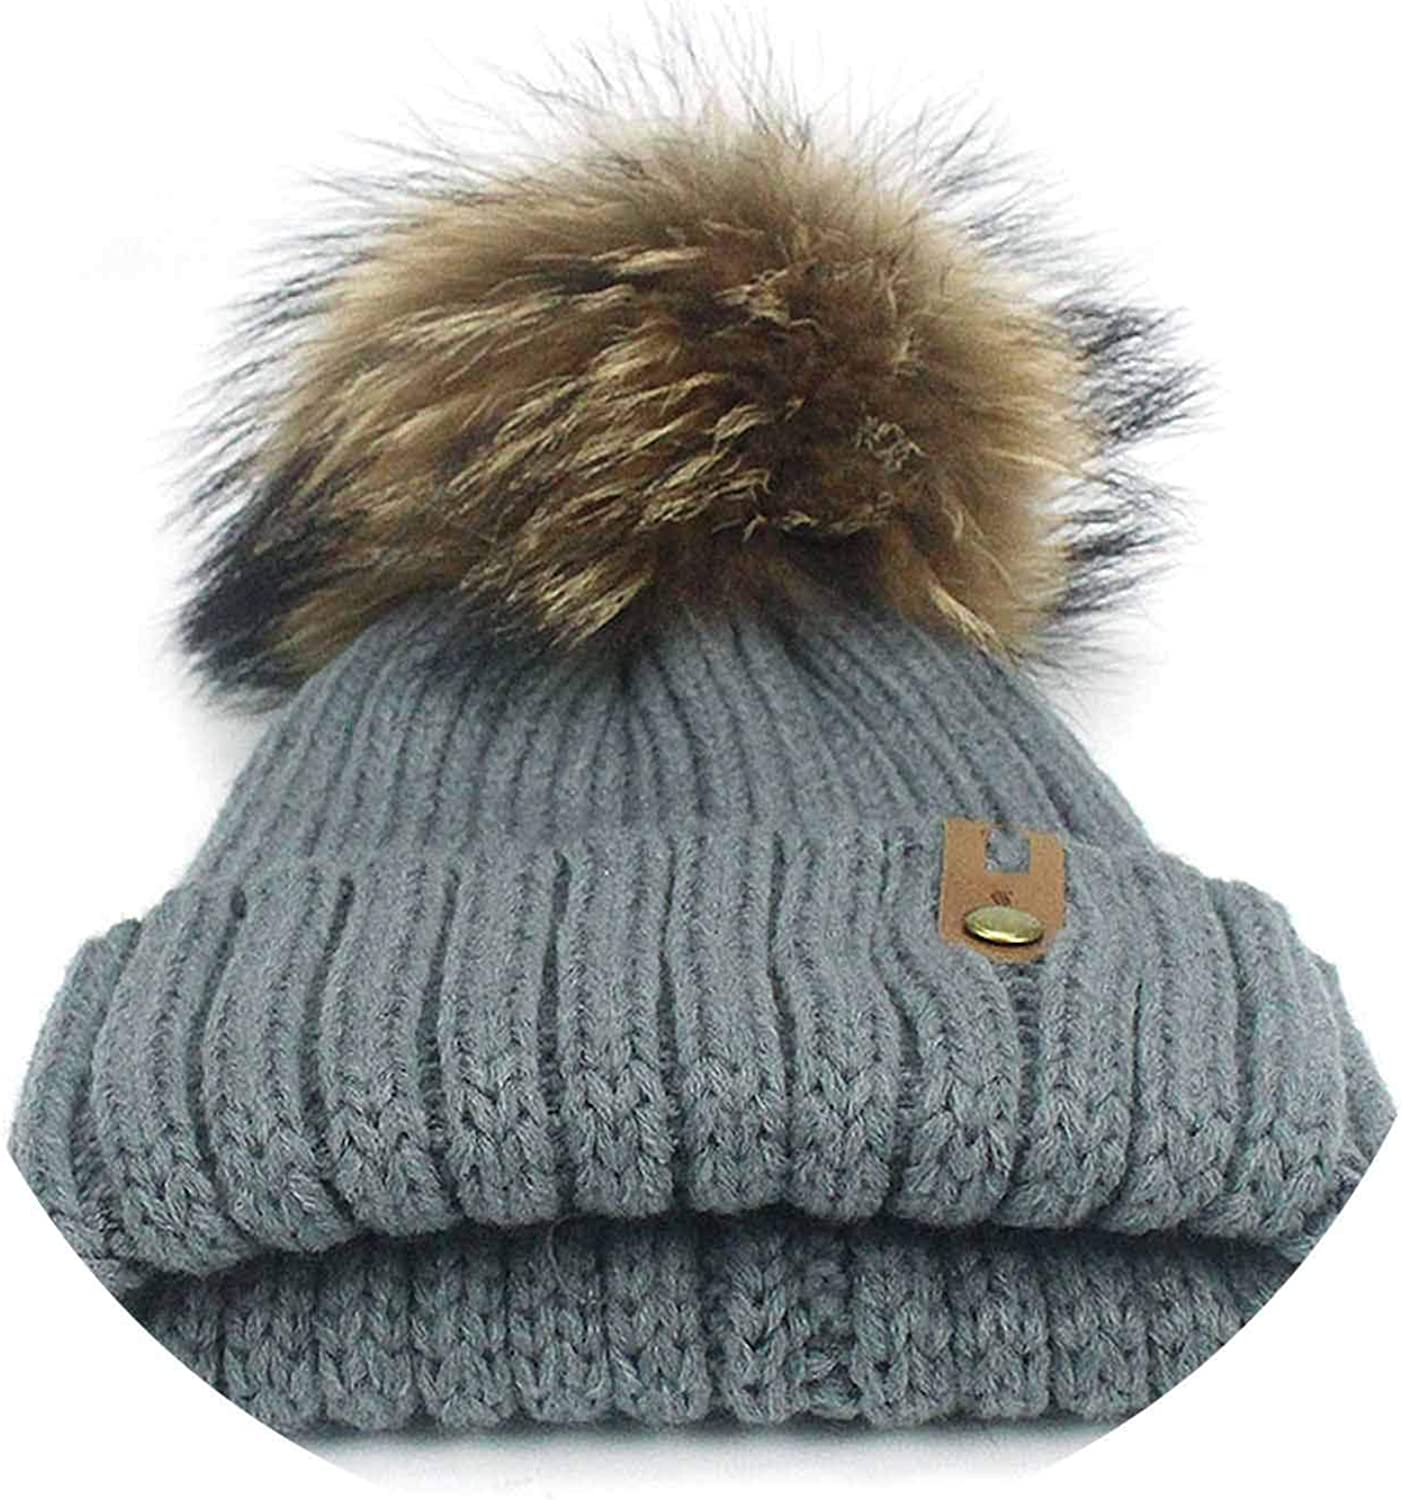 Mink and Cap Pom Poms Winter Hat Hat Knitted Beanies Cap New Thick Fe Skullies,N,